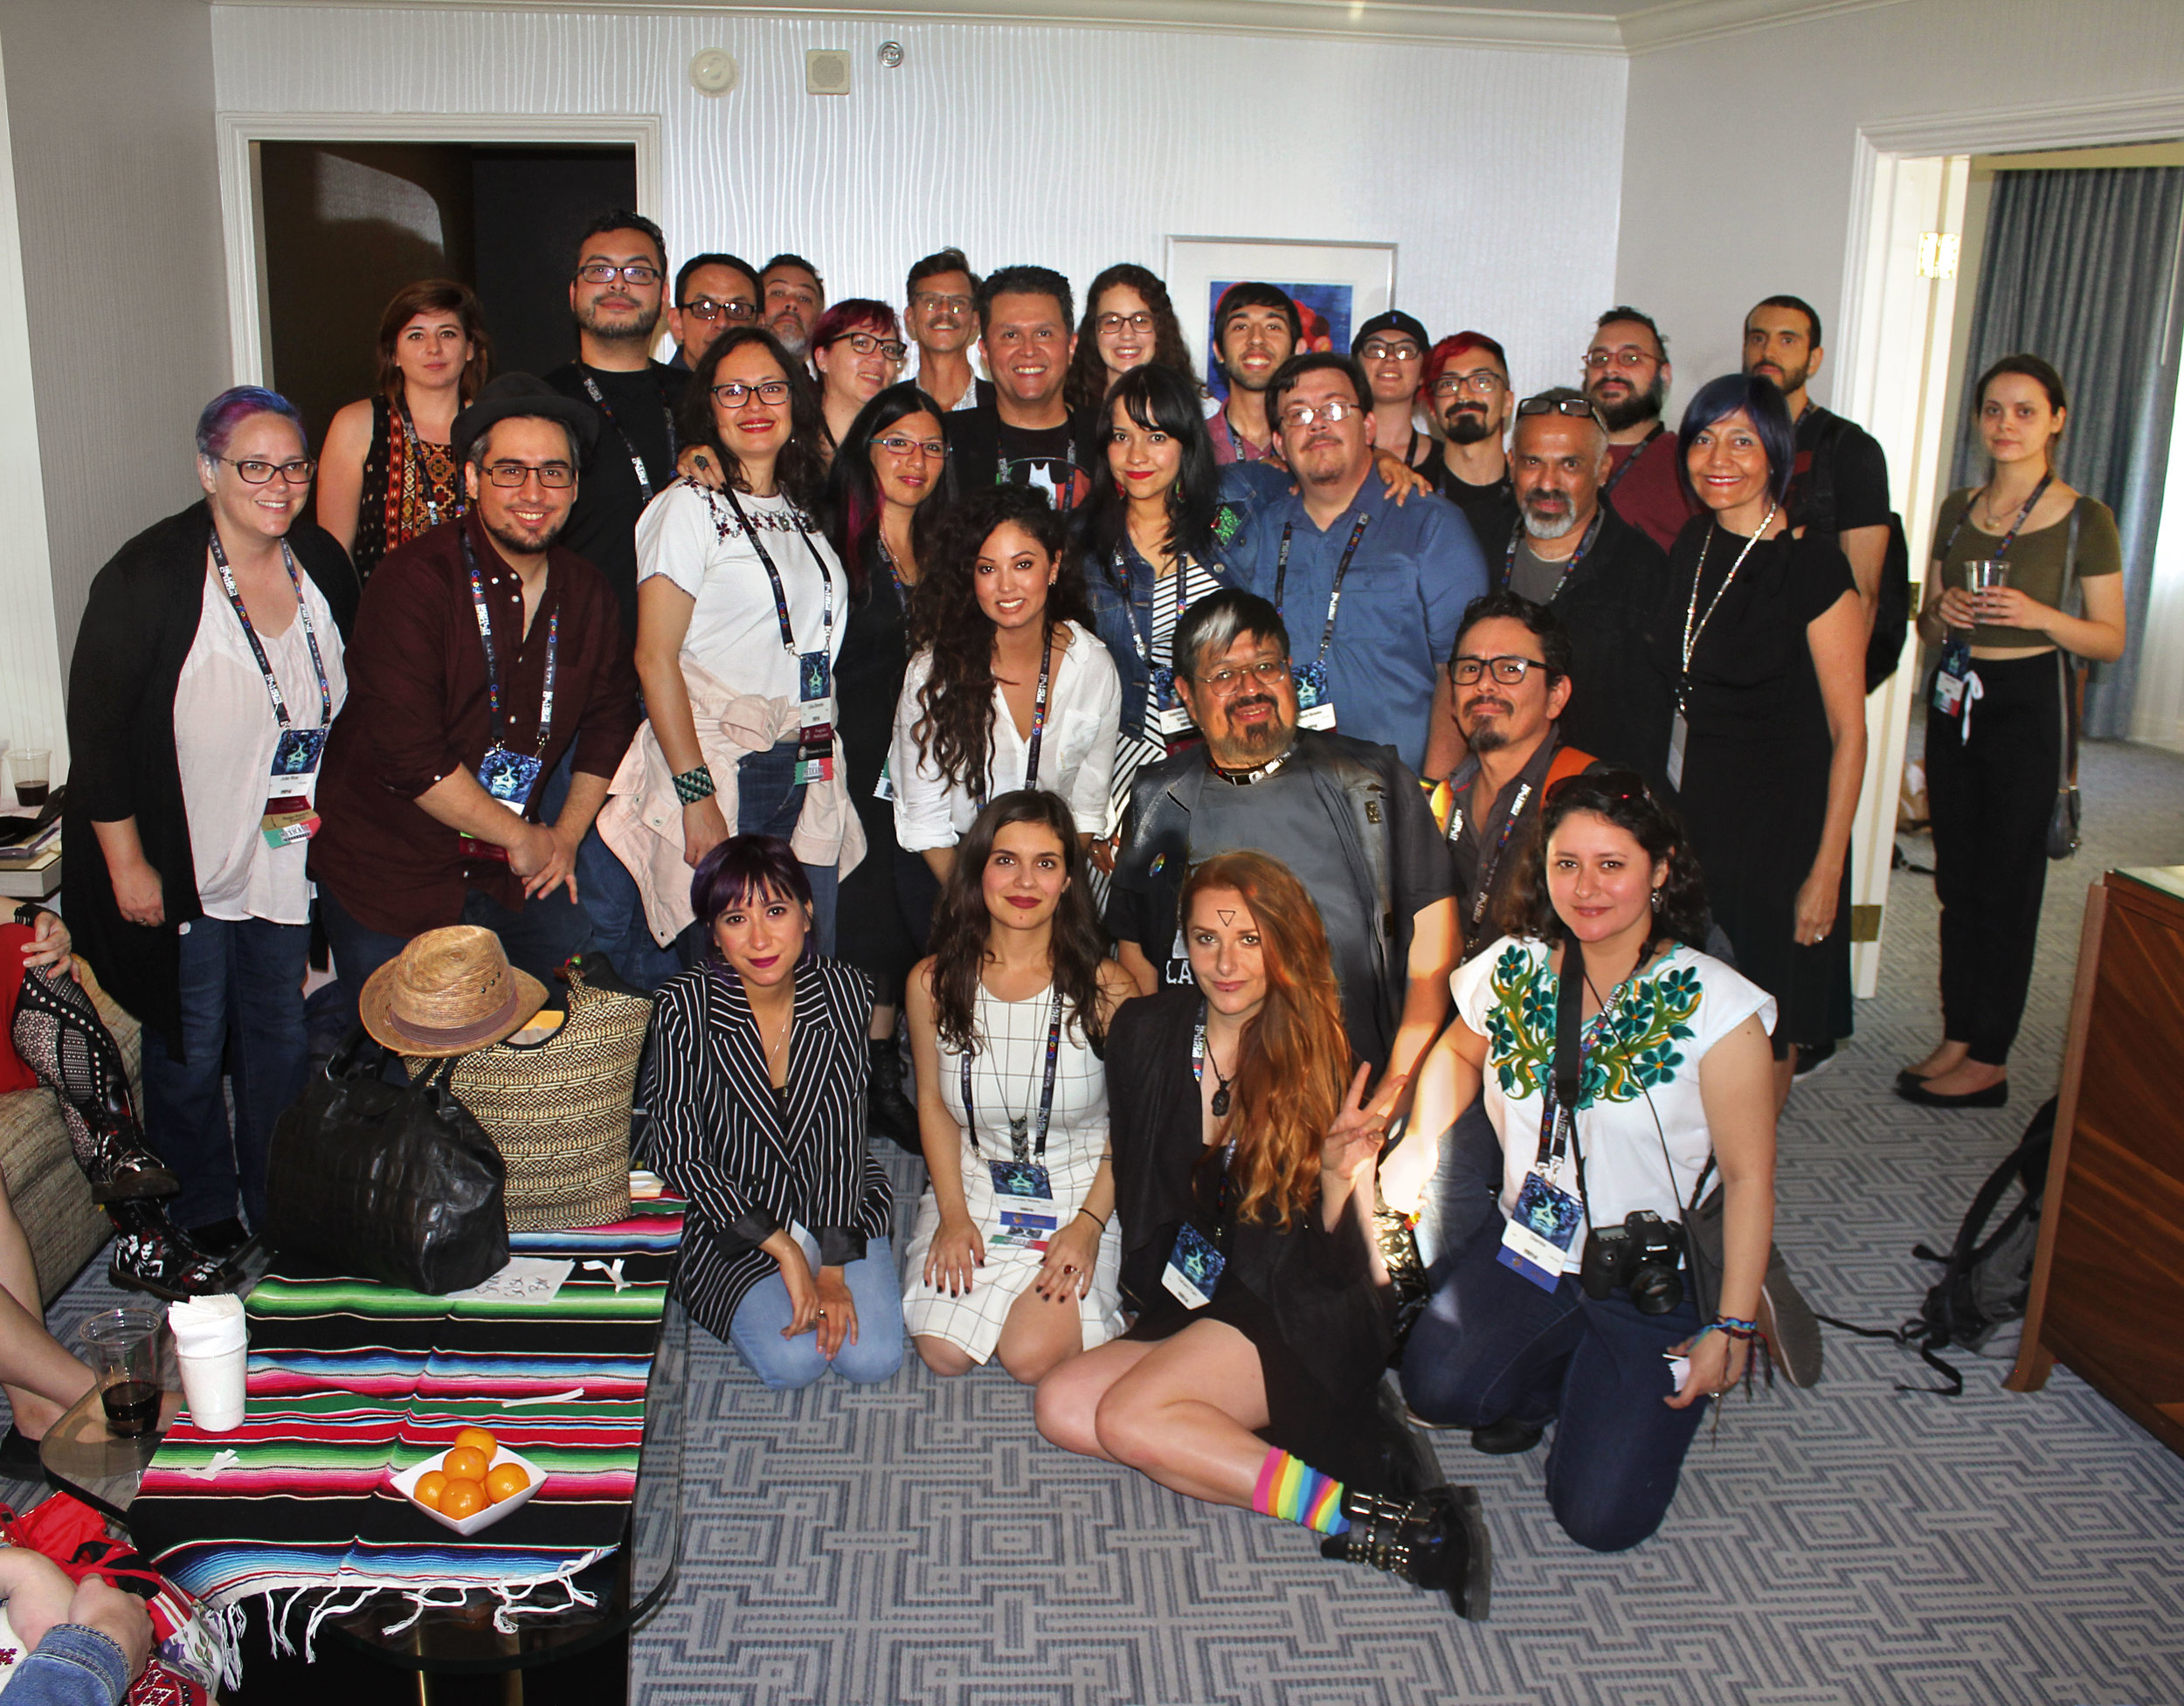 Mexicanx Initiative members at the Mexicanx Initiative reception at Worldcon 76 (Photo by Francesca Myman / Locus Magazine)